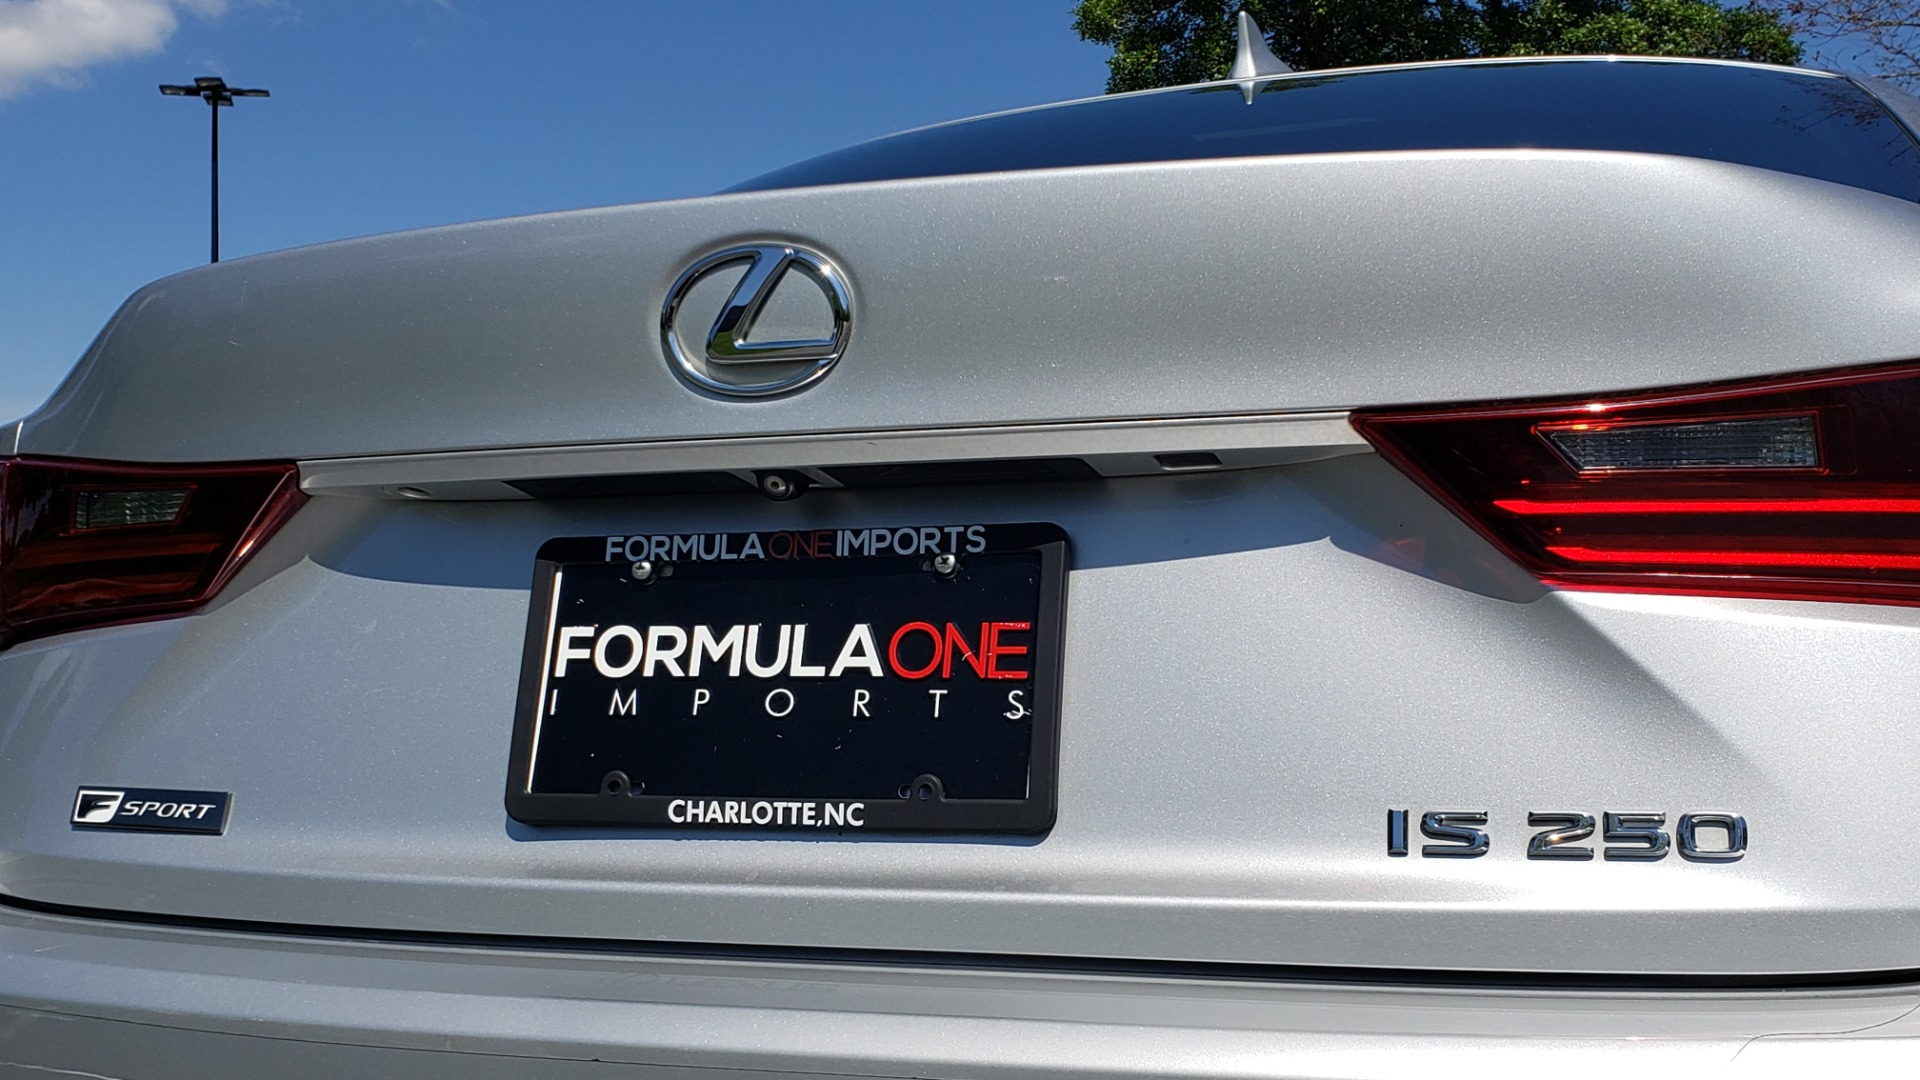 Used 2015 Lexus IS 250 F-SPORT / BSM / SUNROOF / VENT SEATS / REARVIEW for sale Sold at Formula Imports in Charlotte NC 28227 21